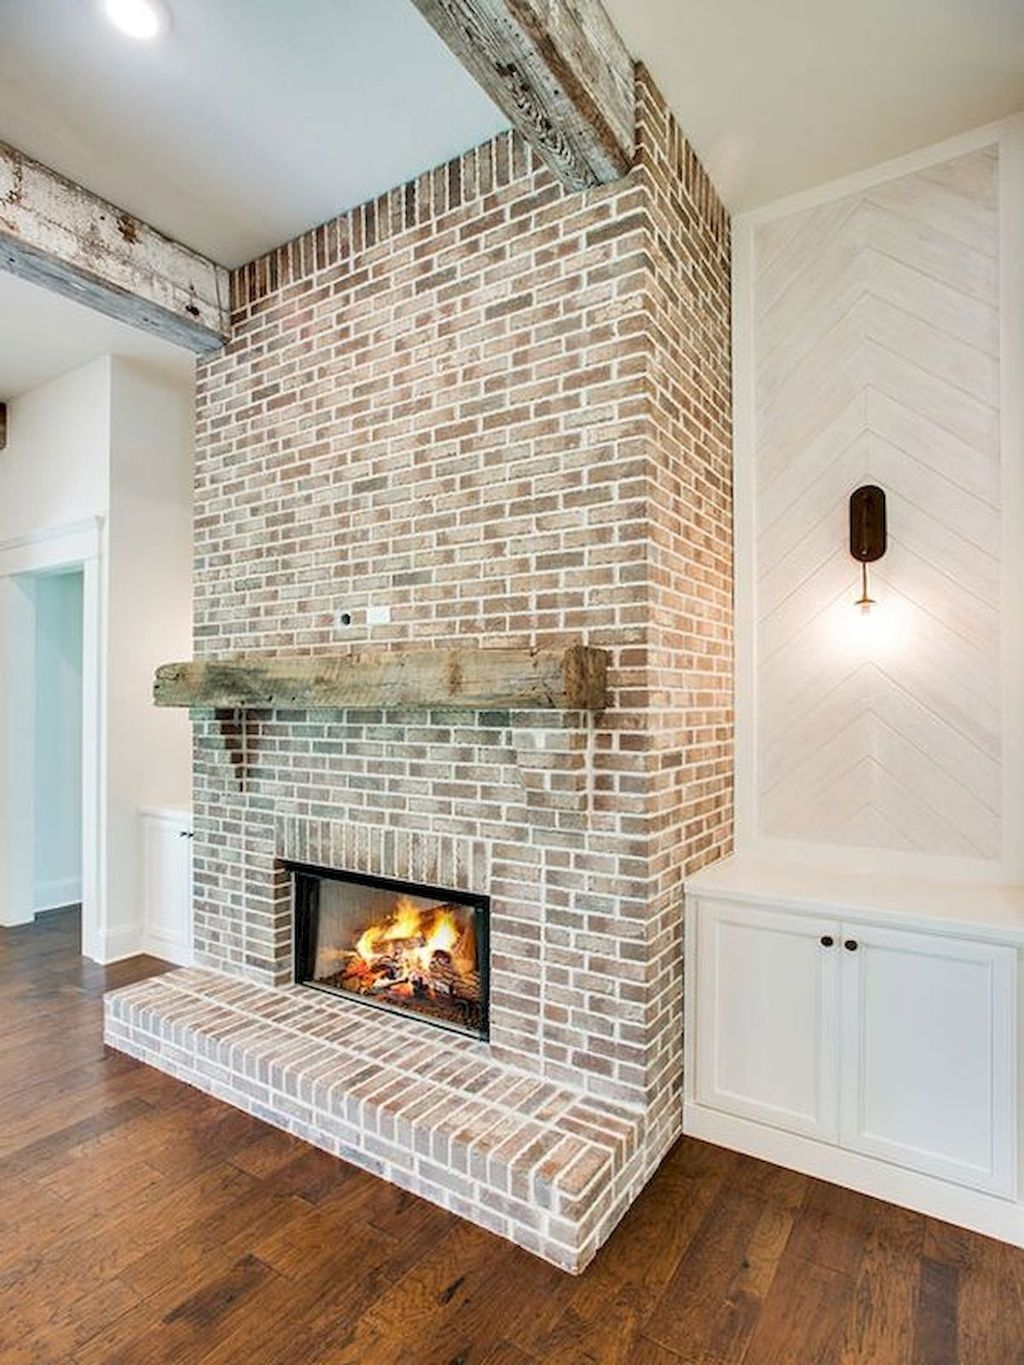 Superb Fireplace Design Ideas You Can Do It08